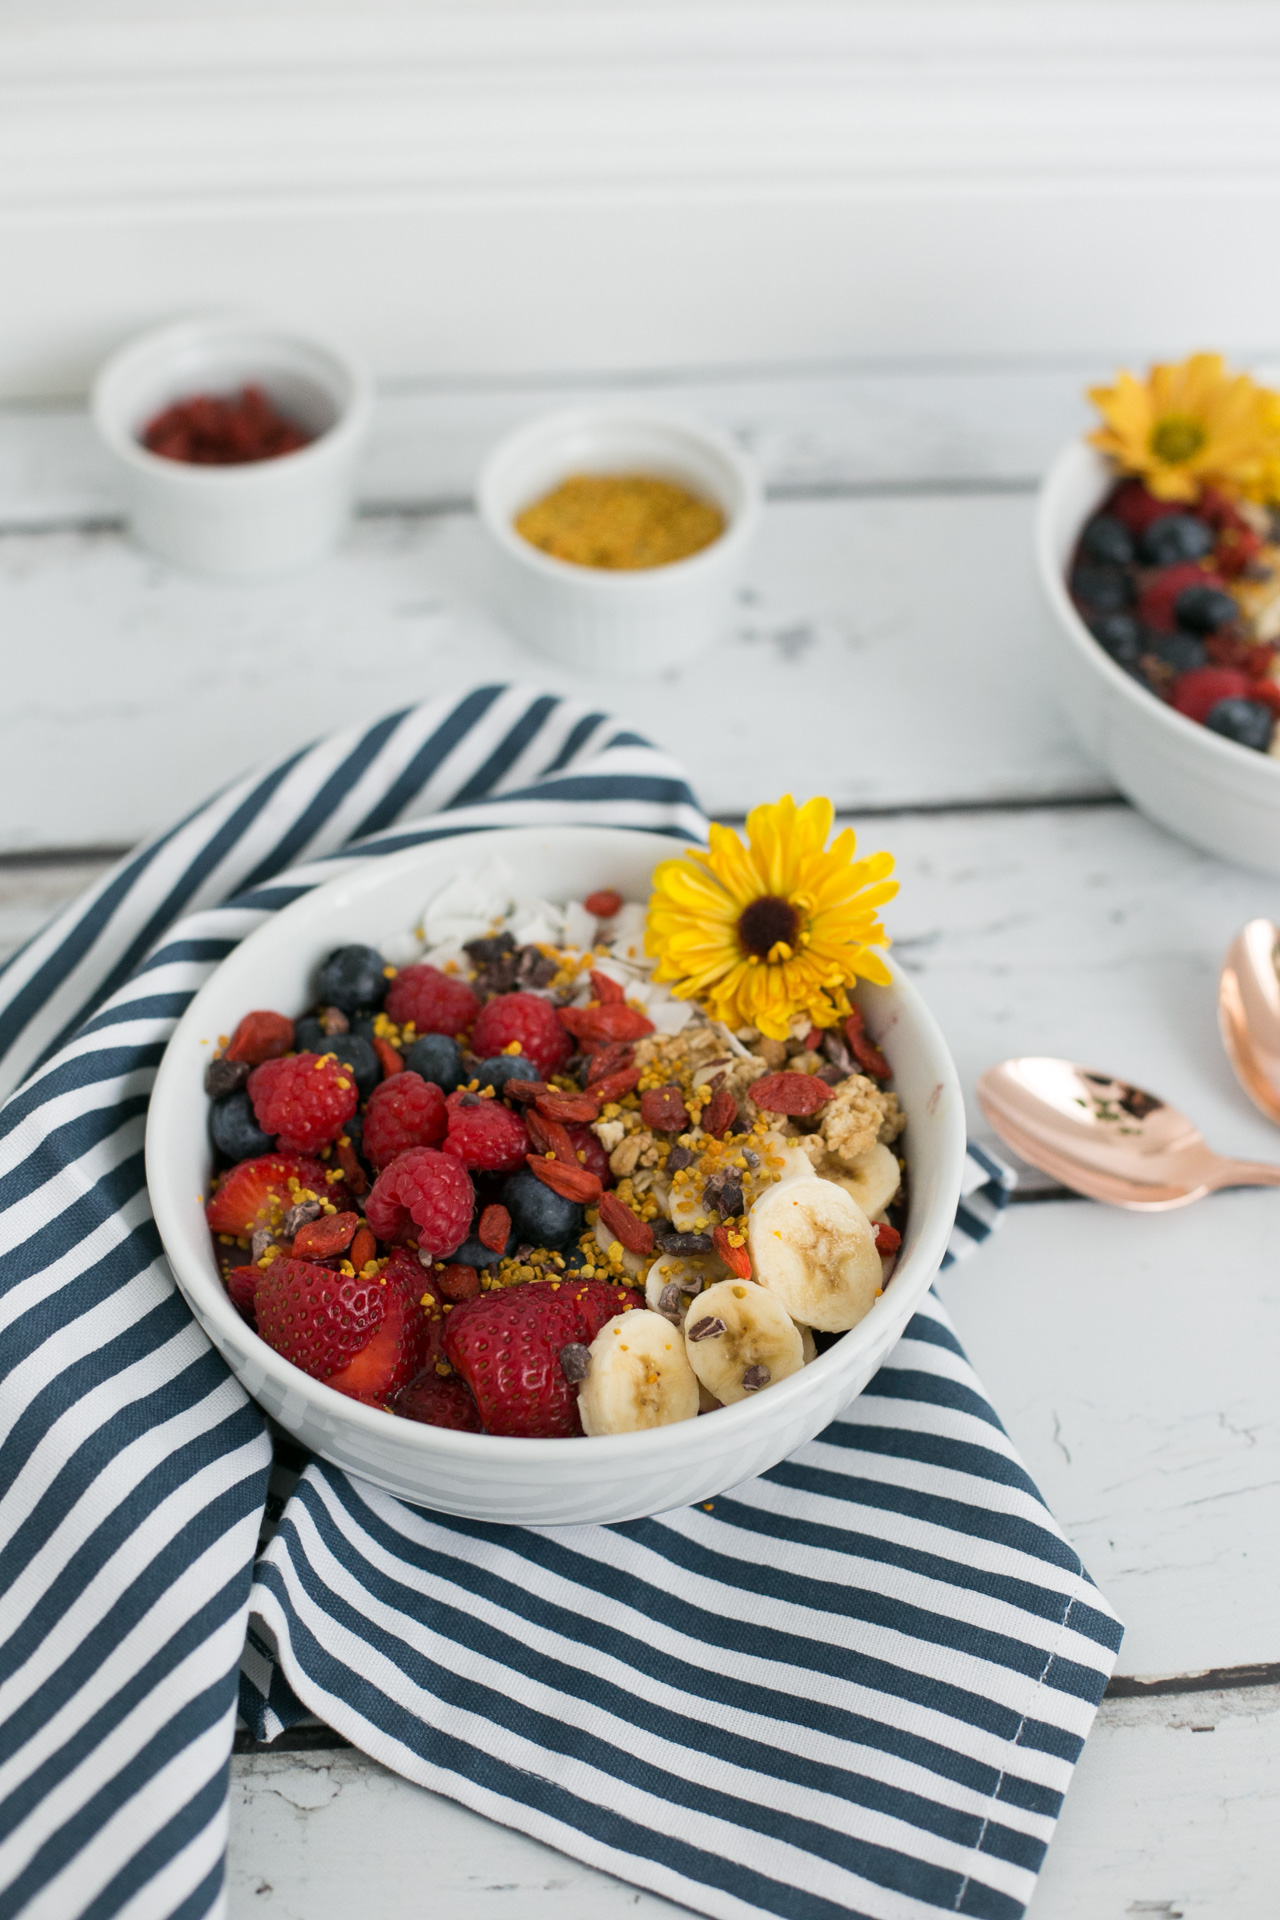 add some flowers to your acai for an aesthetic touch - M Loves M @marmar